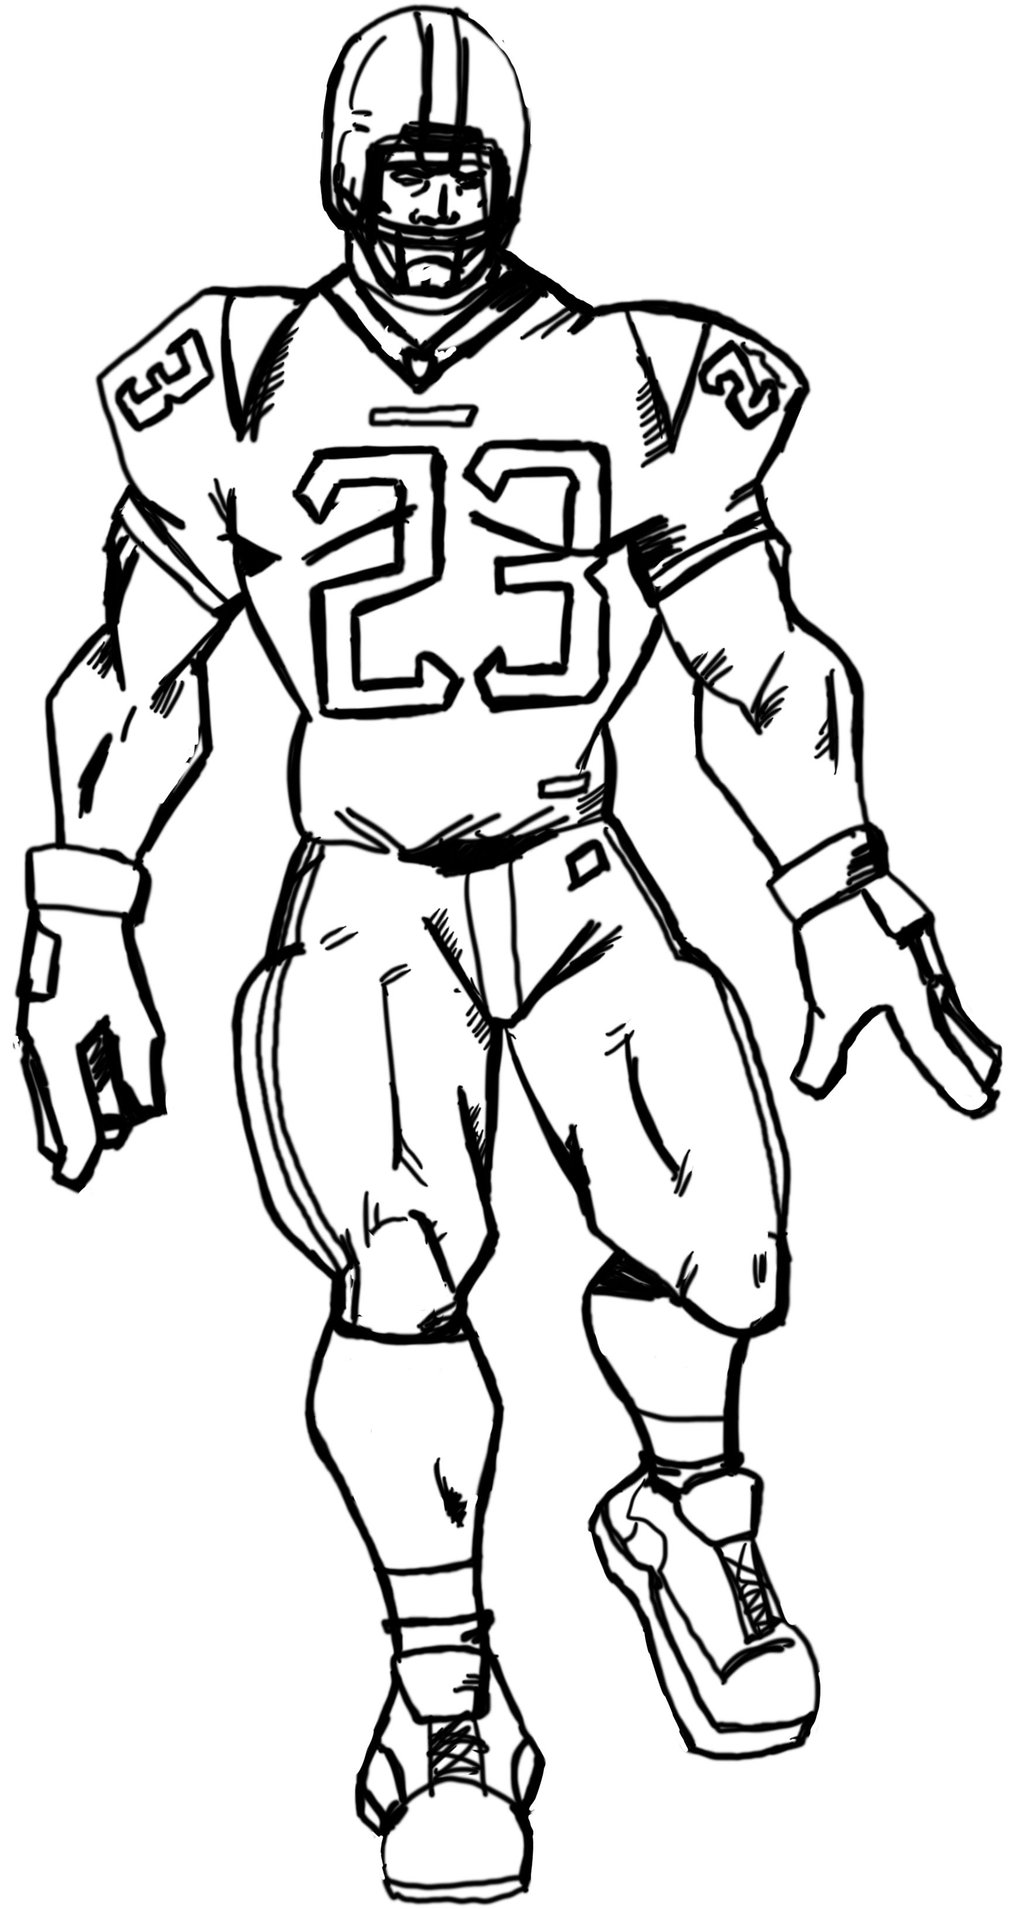 Football Player Drawings Pictures To Pin